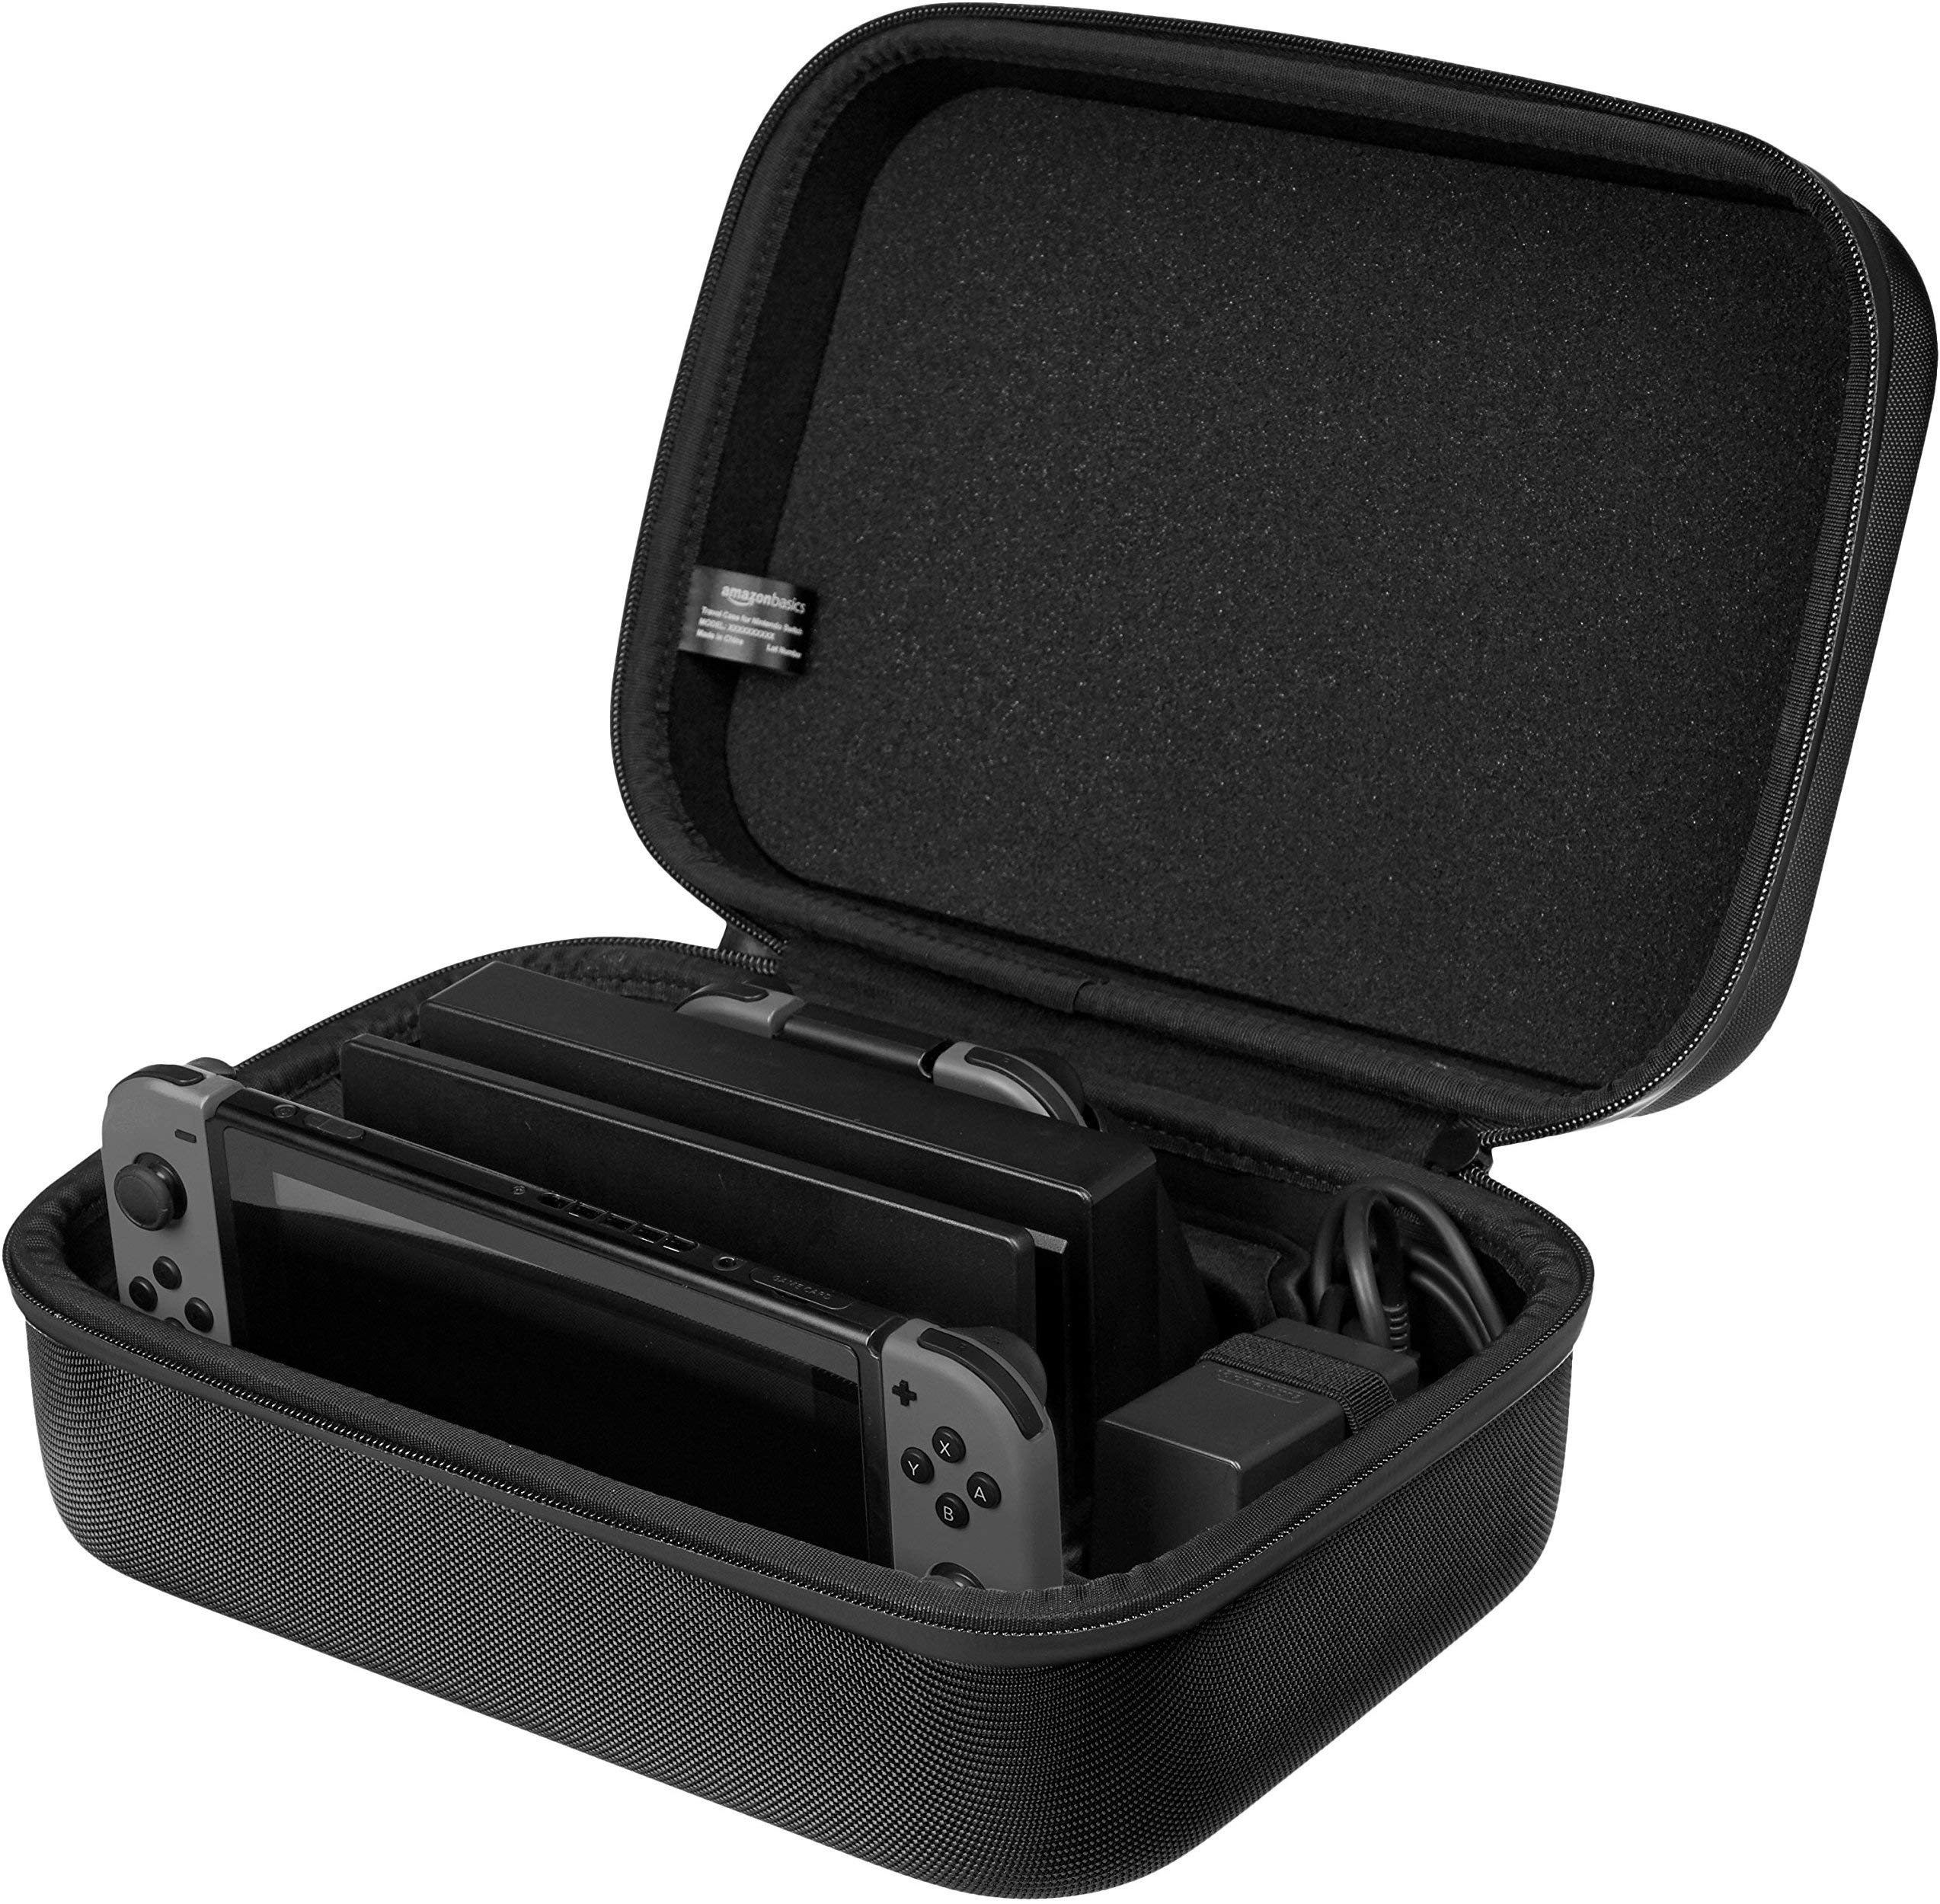 Amazon Basics Hard Shell Travel and Storage Case for Nintendo Switch - 12 x 4.8 x 9 Inches, Black